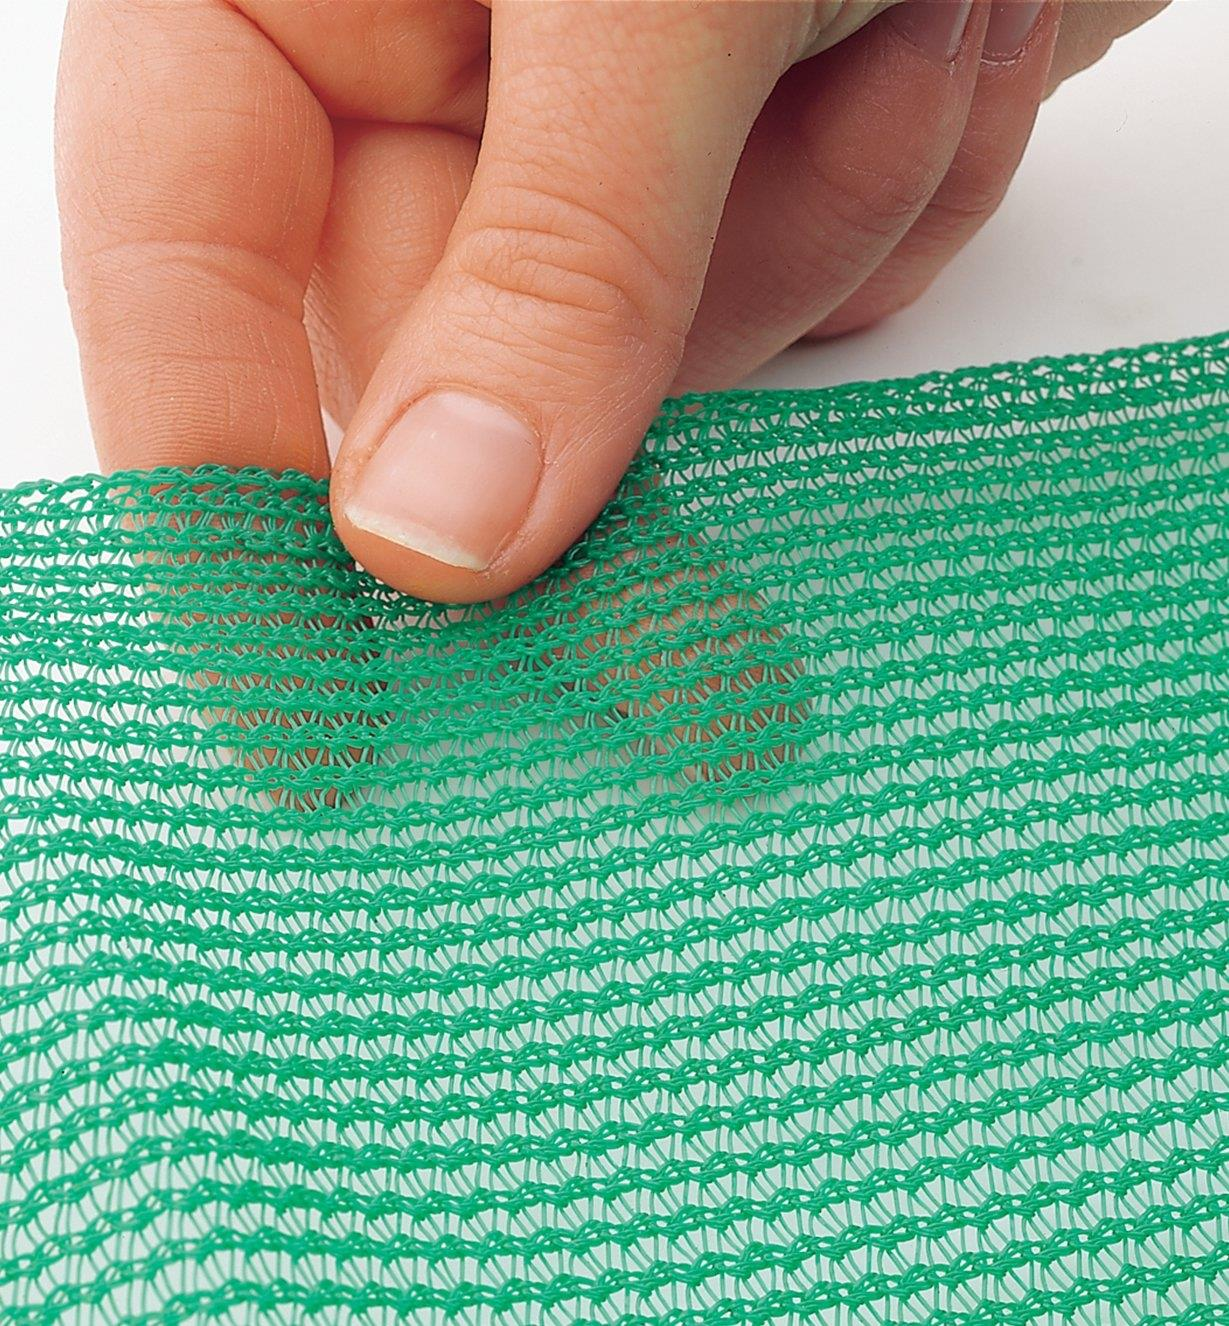 Close-up of tight-knit green material